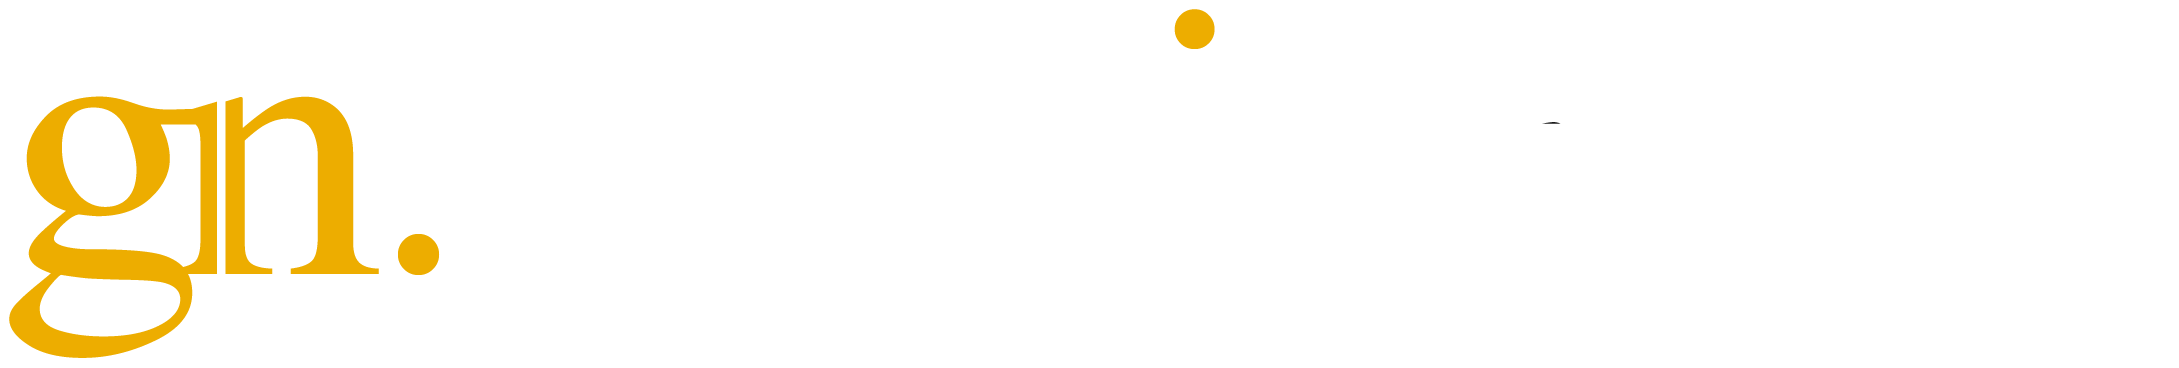 GN Media Group - Digital Marketing Agency For Local Business